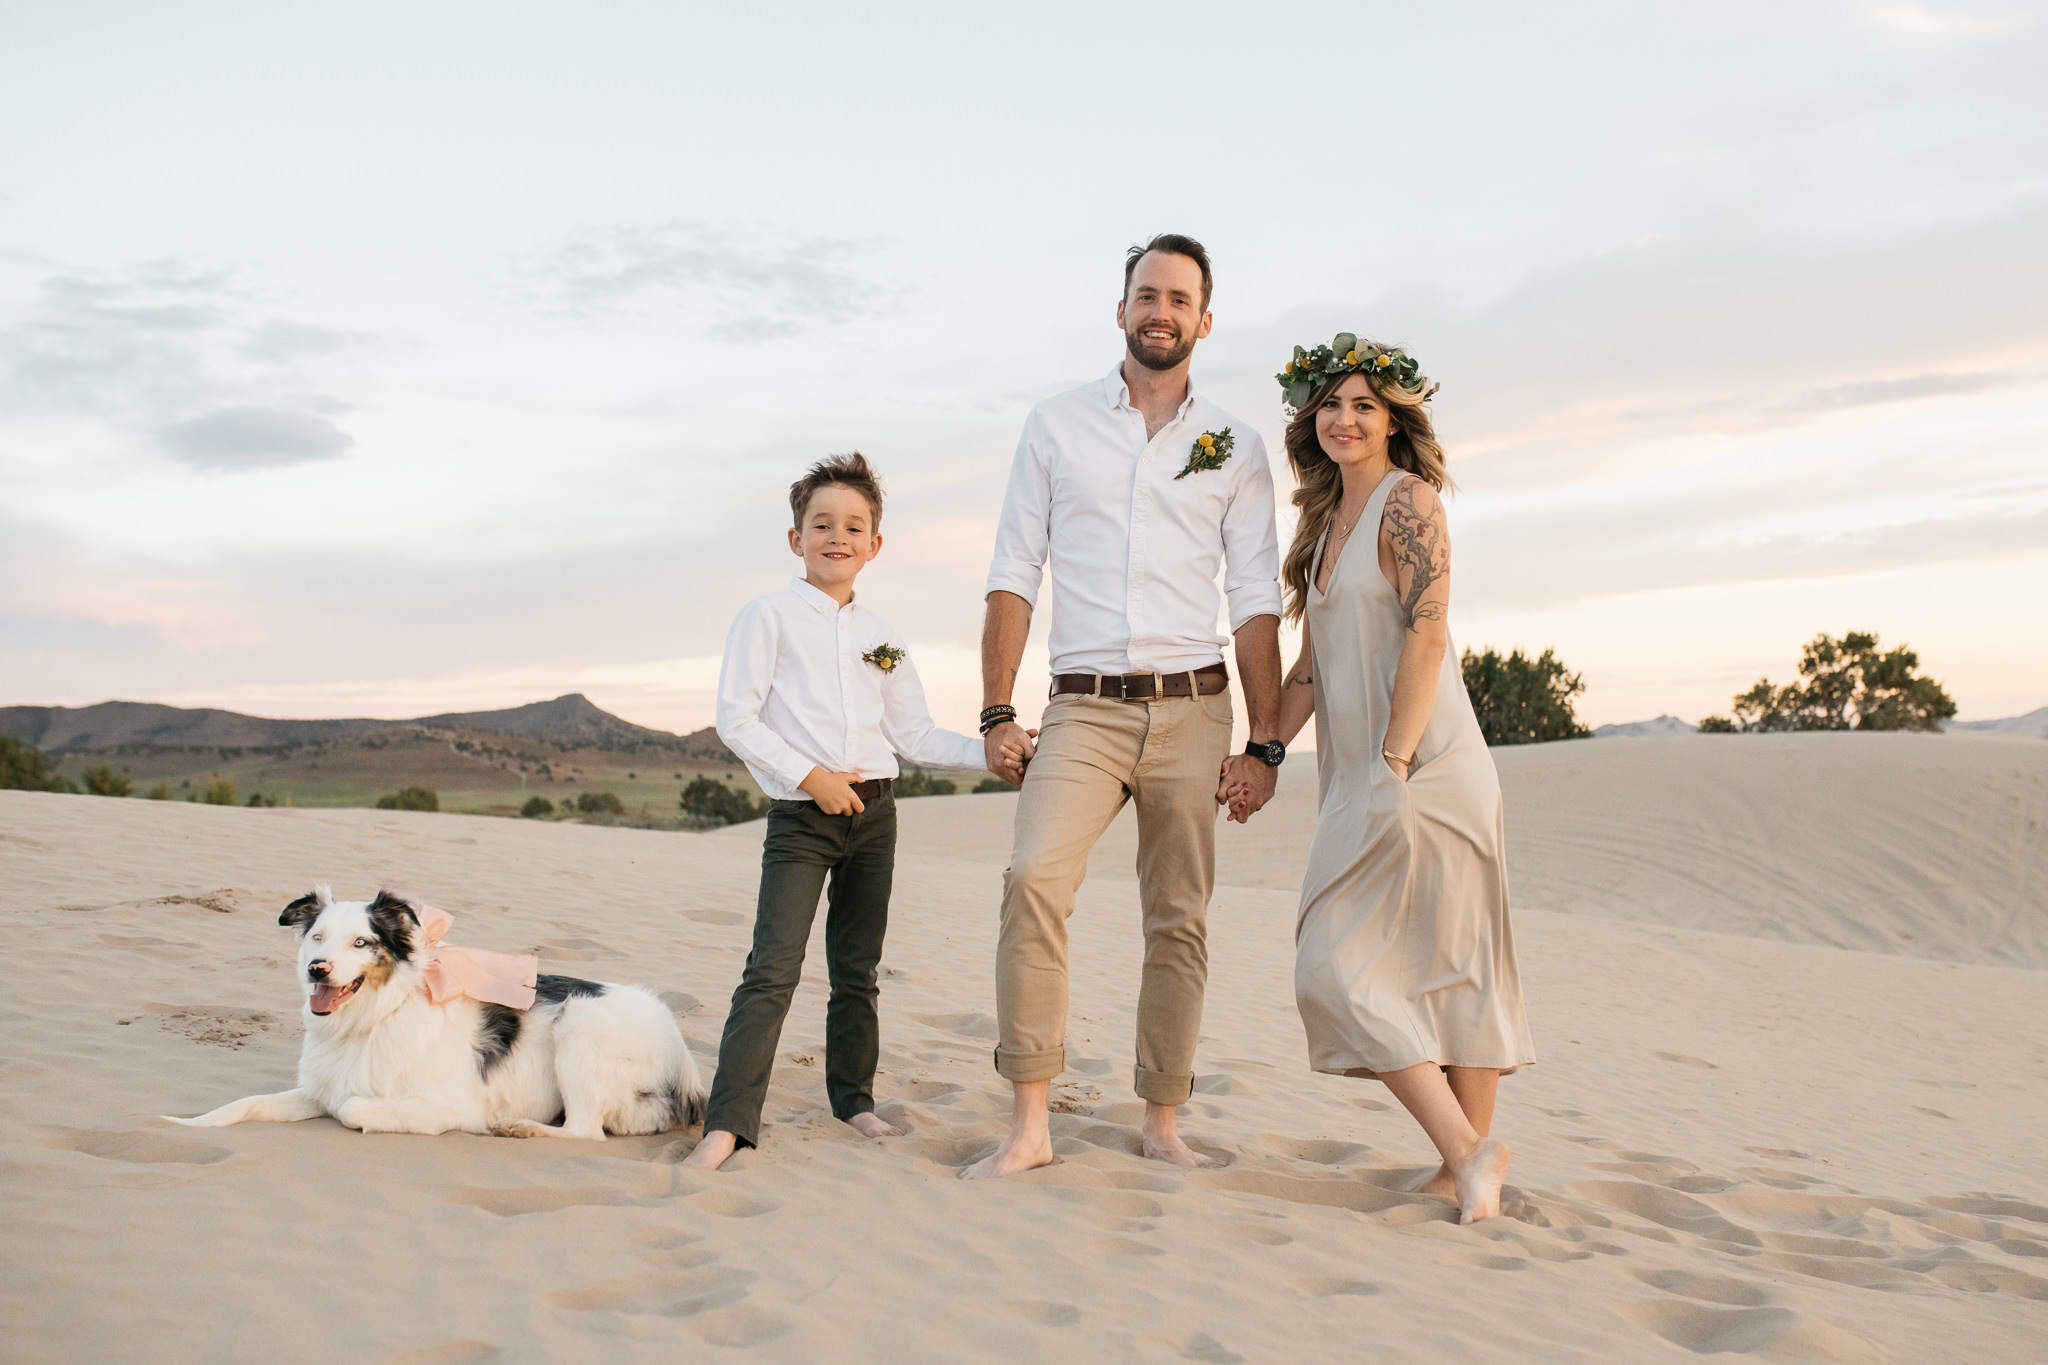 67_PRVW_Paige_Charlie_Wed_Trevor_Hooper_Photo.jpg